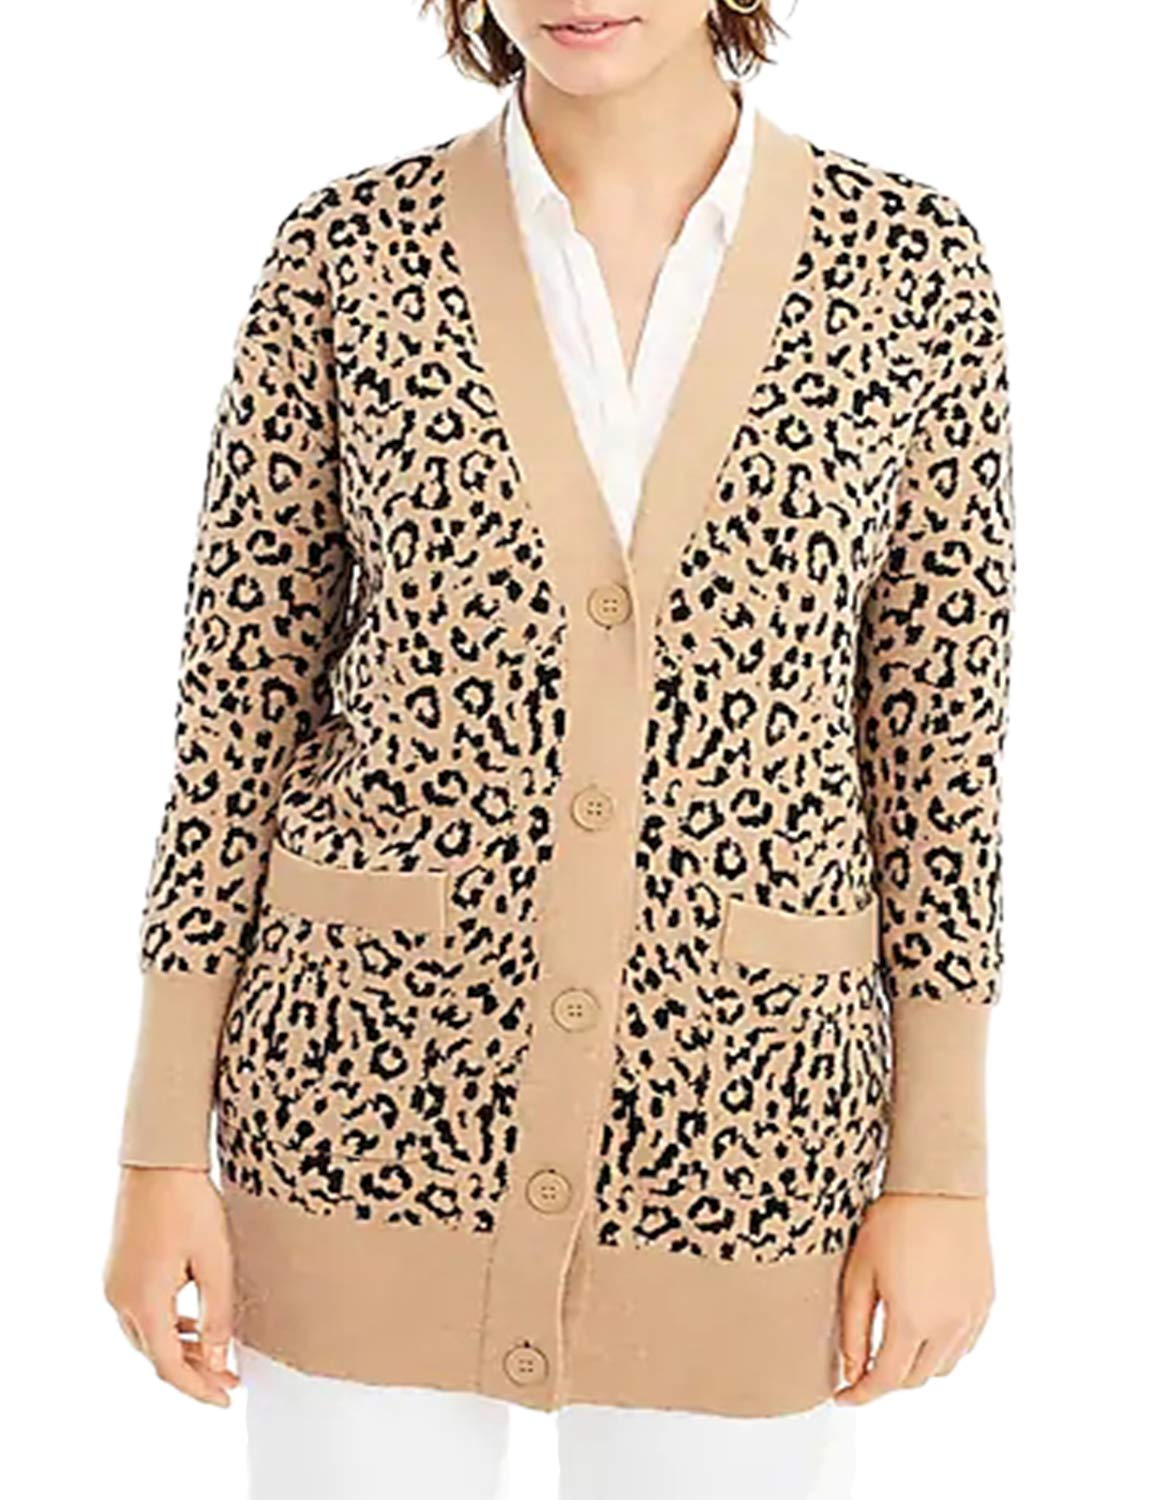 BMJL Women's Leopard Print Cardigan Long Sleeved Sweater Longline with Button Pockets